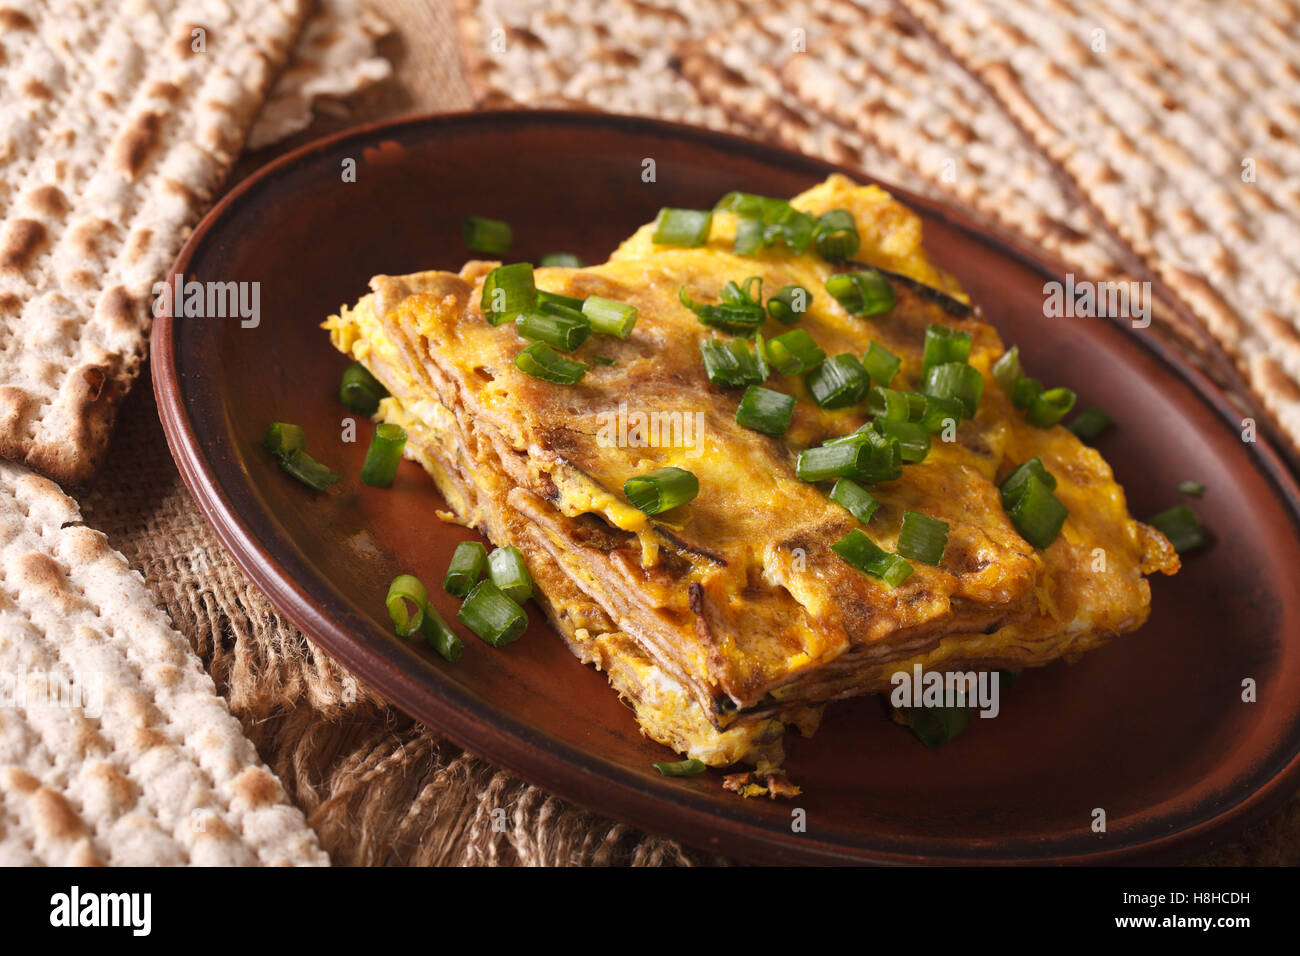 Jewish cuisine: matzah brei with green onions close-up on a plate. horizontal - Stock Image